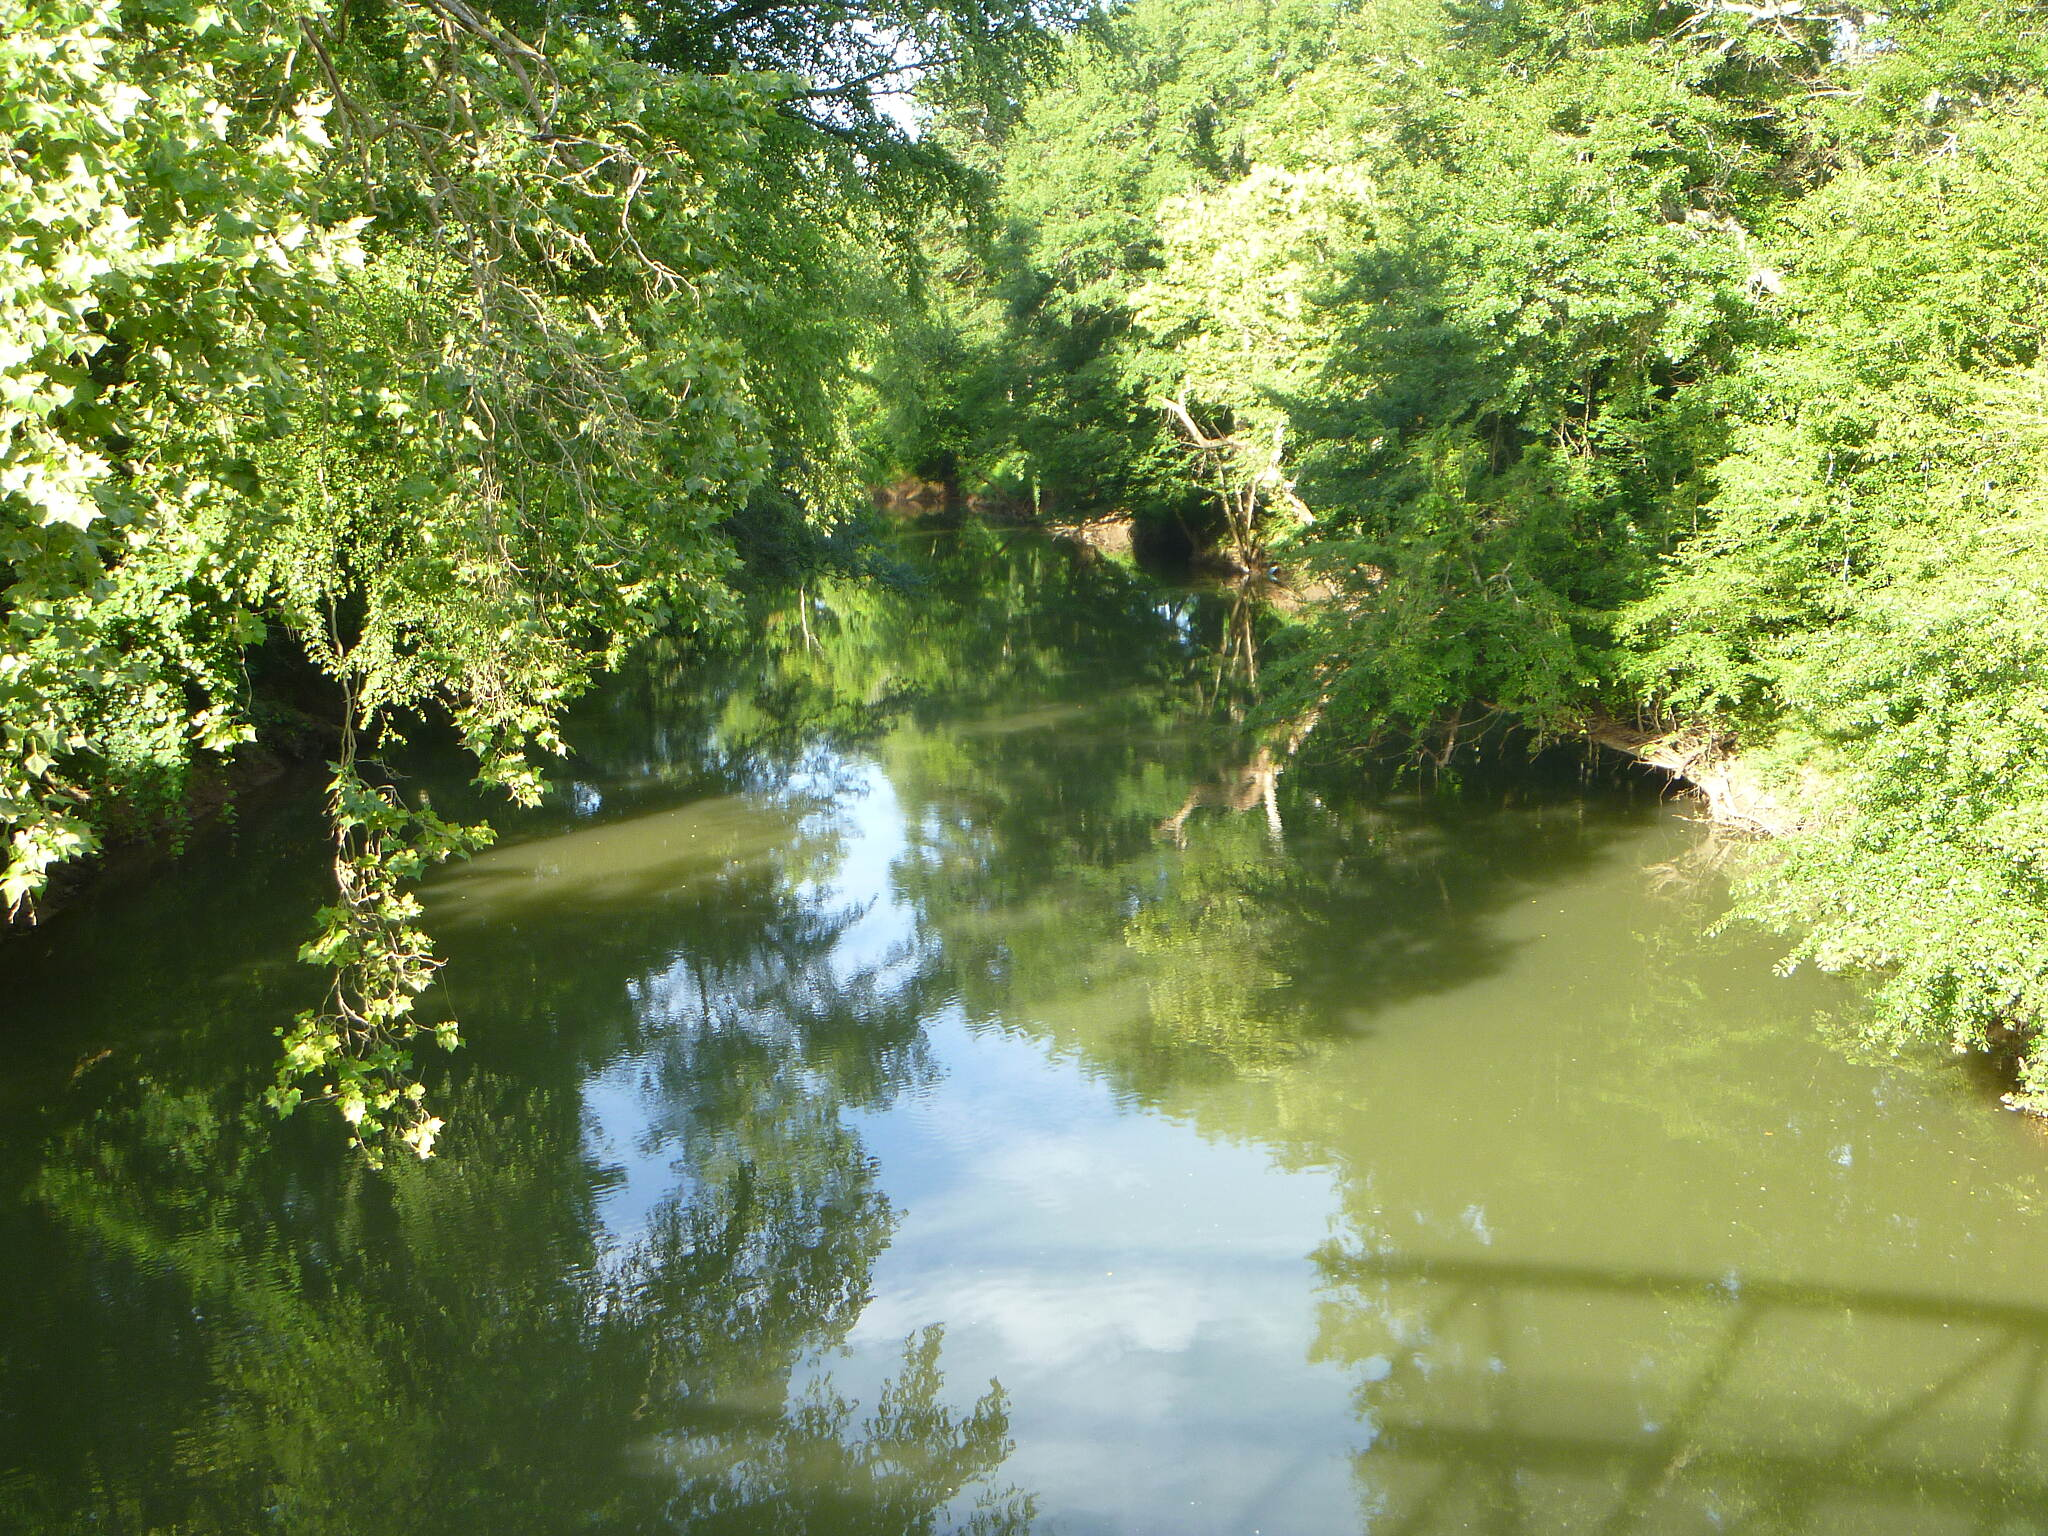 Big Cove Creek Greenway creek A part of Big Cove Creek